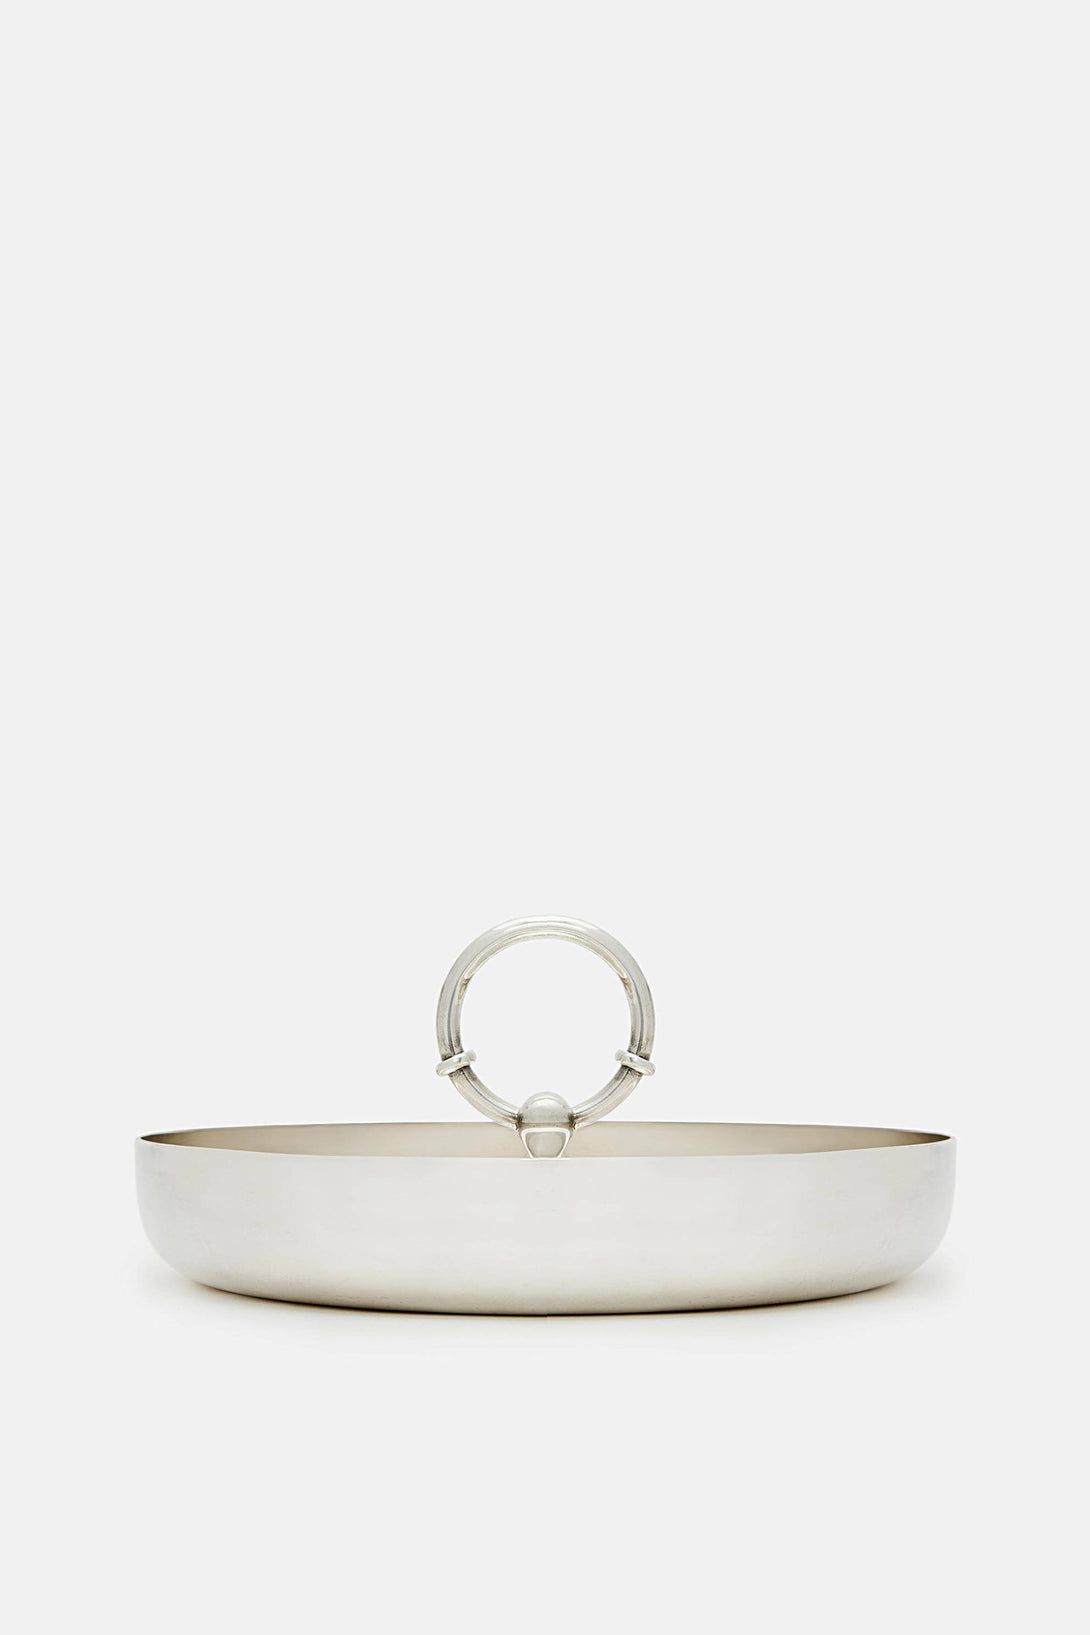 Hermes Candy Dish